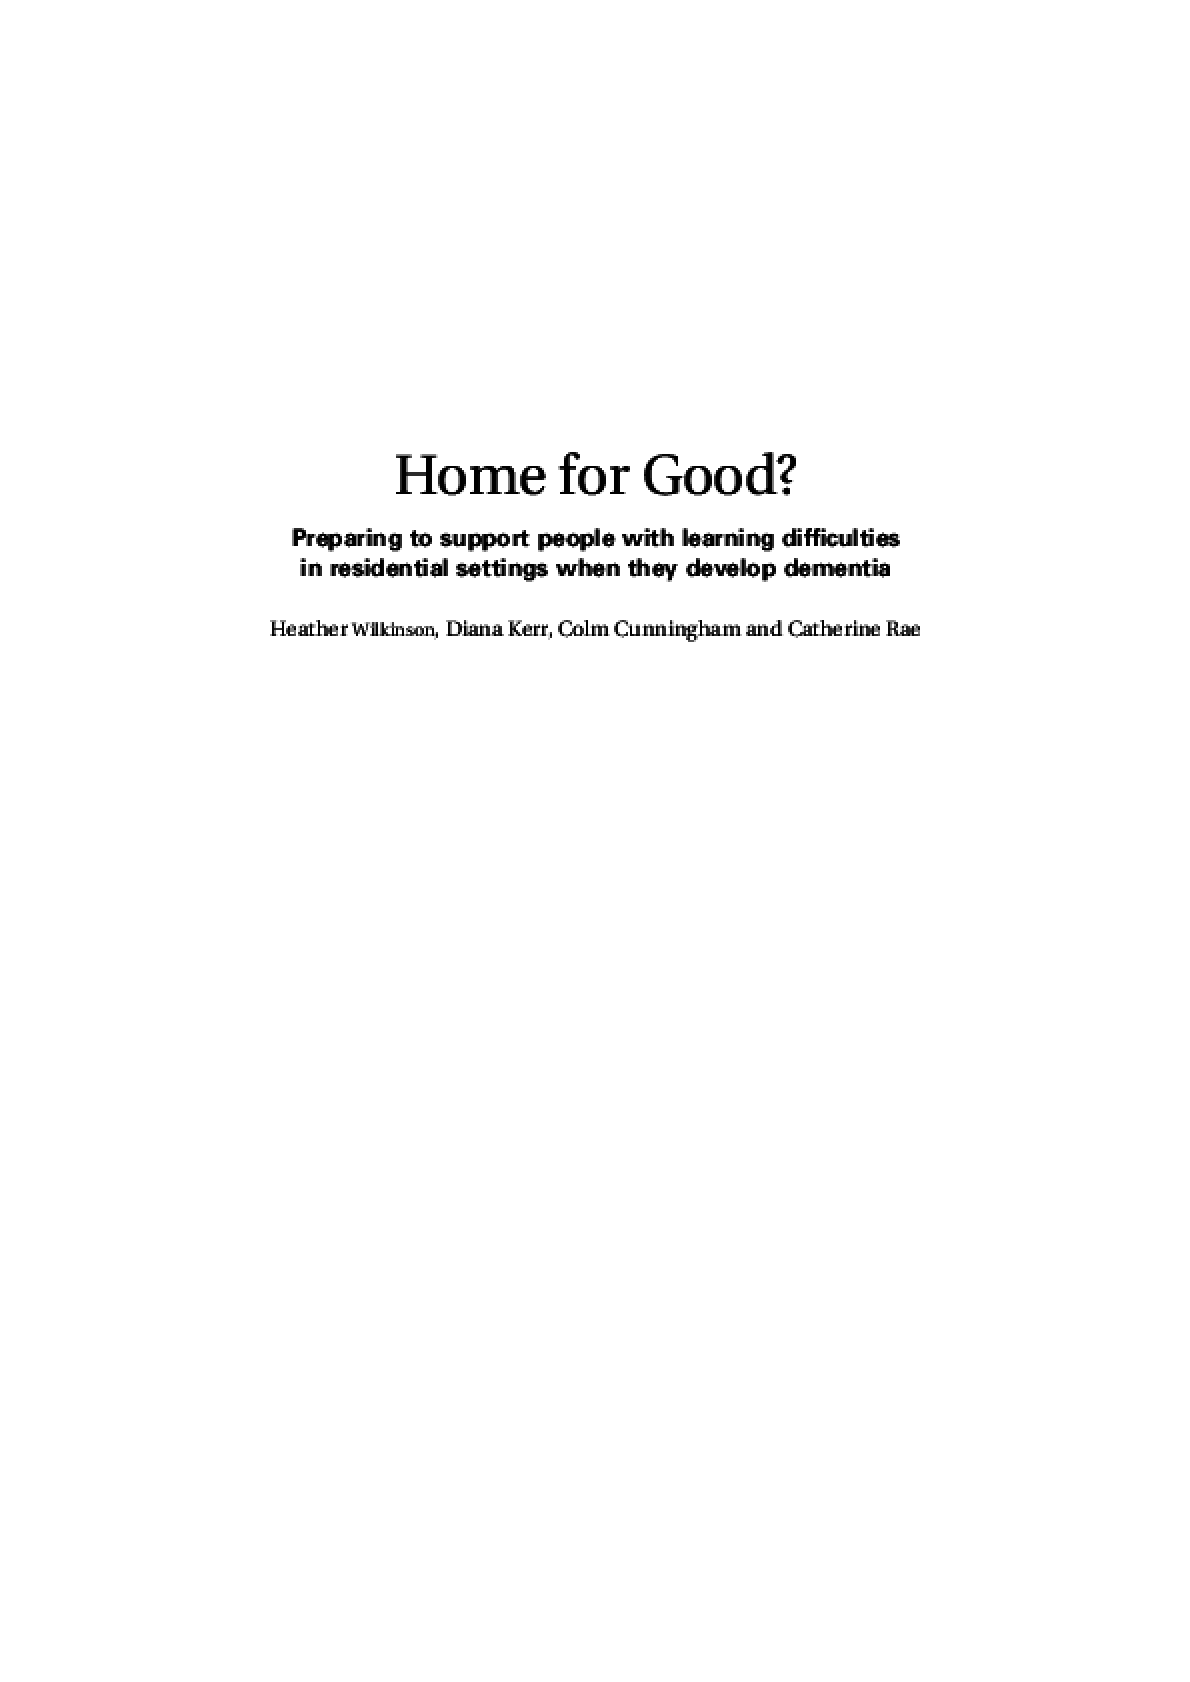 Home for Good? Preparing to Support People with Learning Difficulties in Residential Settings when they Develop Dementia